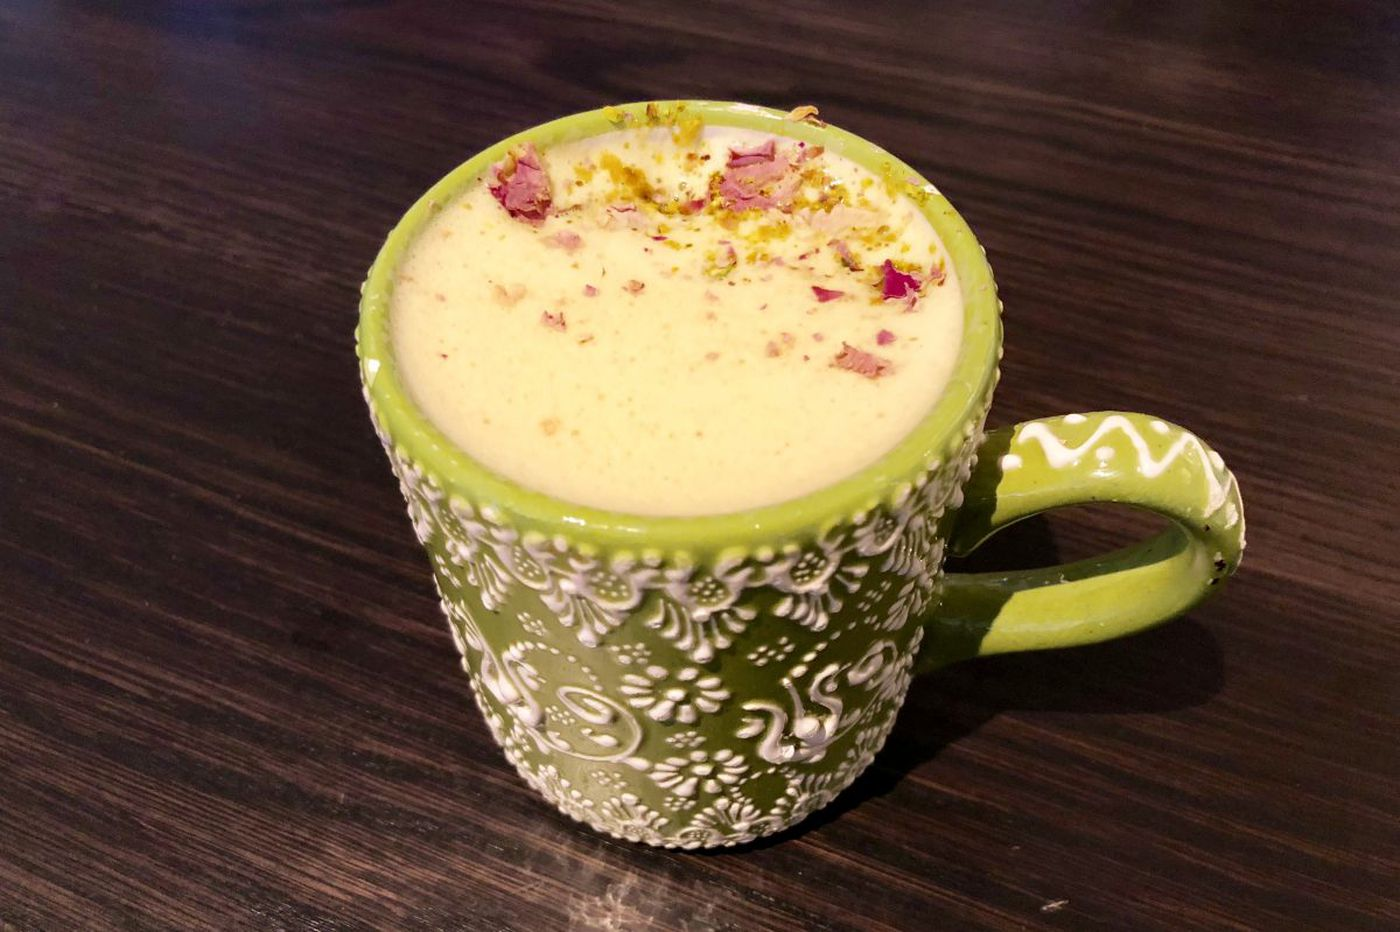 Orchid latte? Flower powers Middle Eastern drinks and desserts